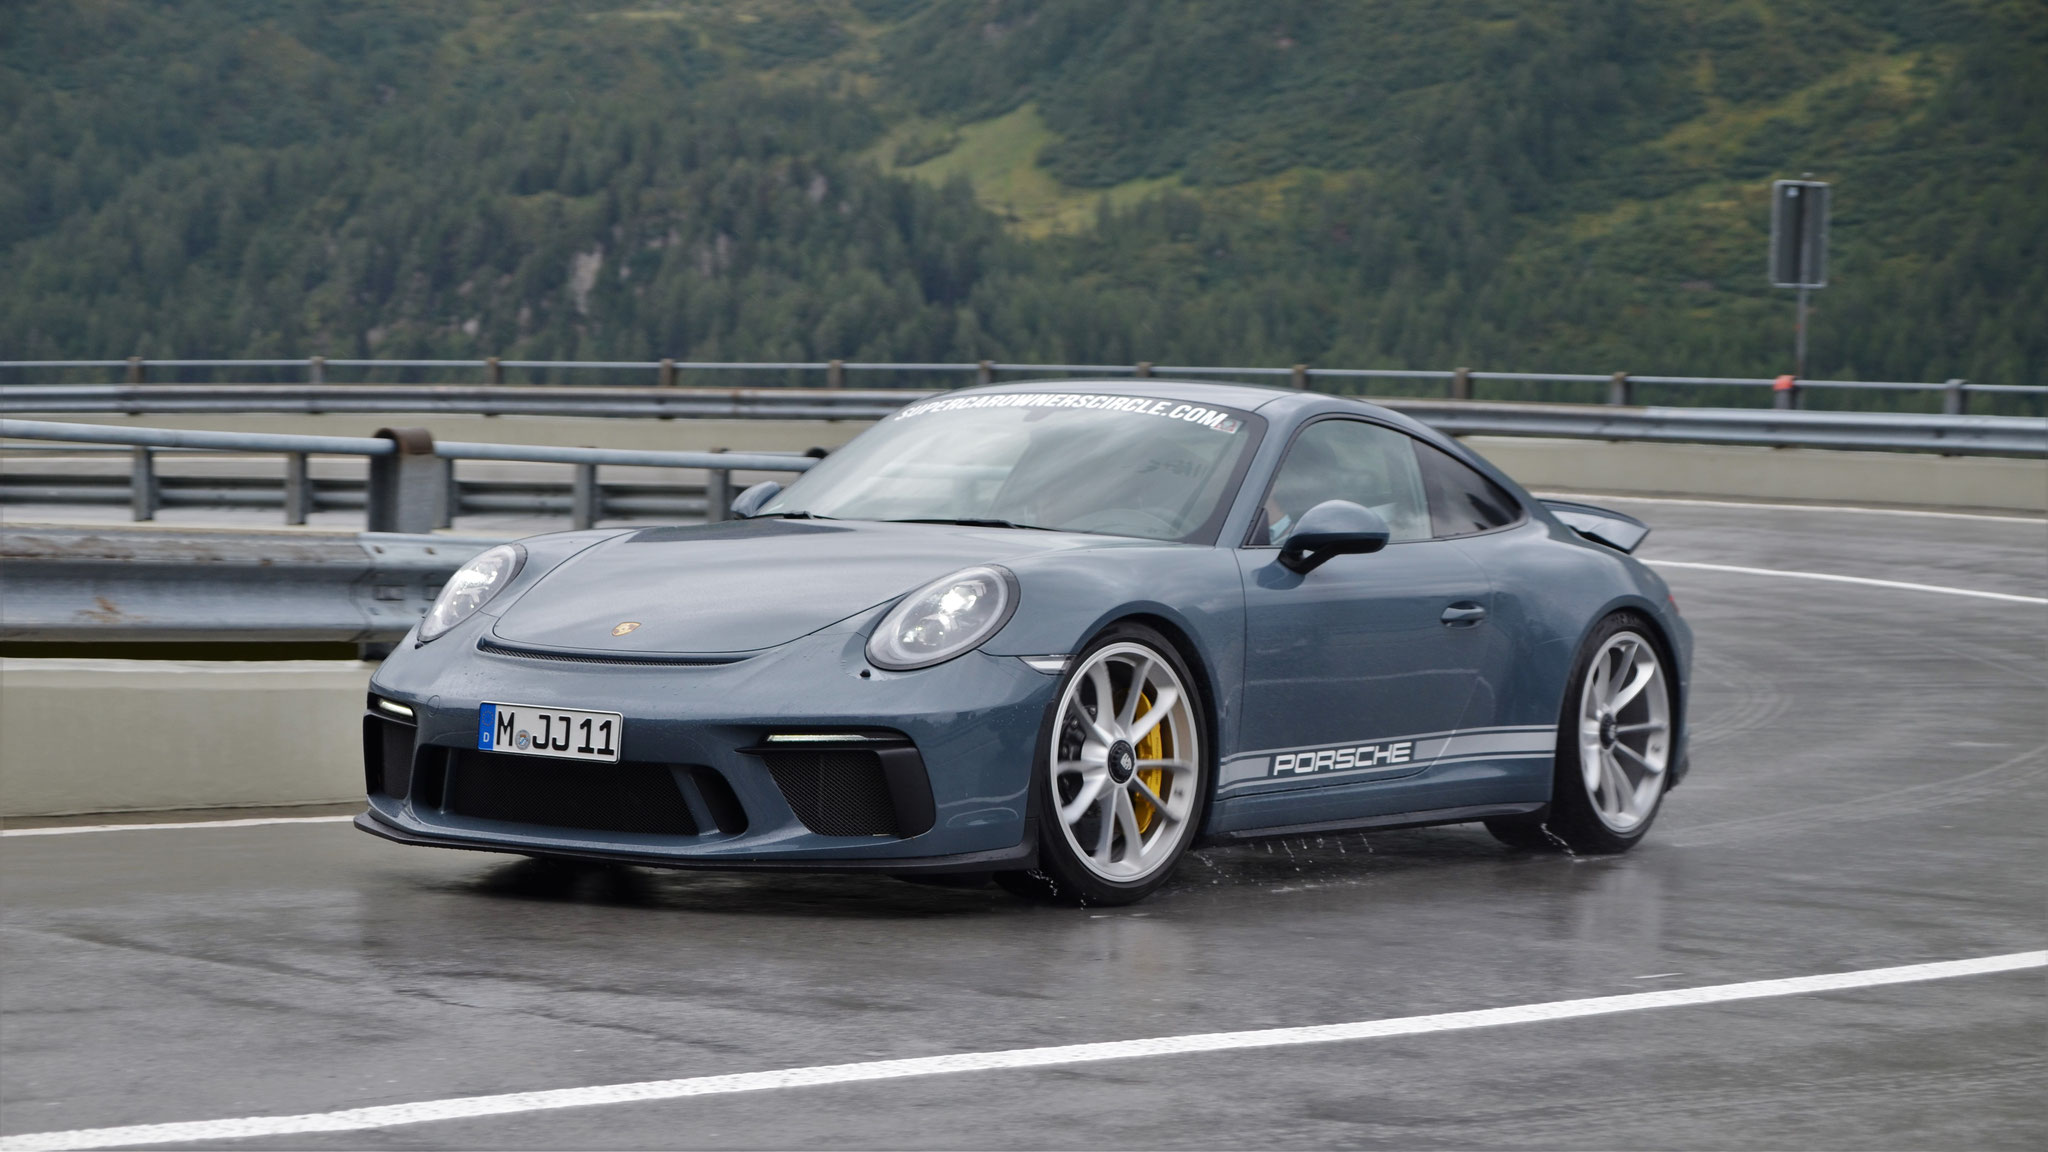 Porsche 991 GT3 Touring Package - M-JJ-11